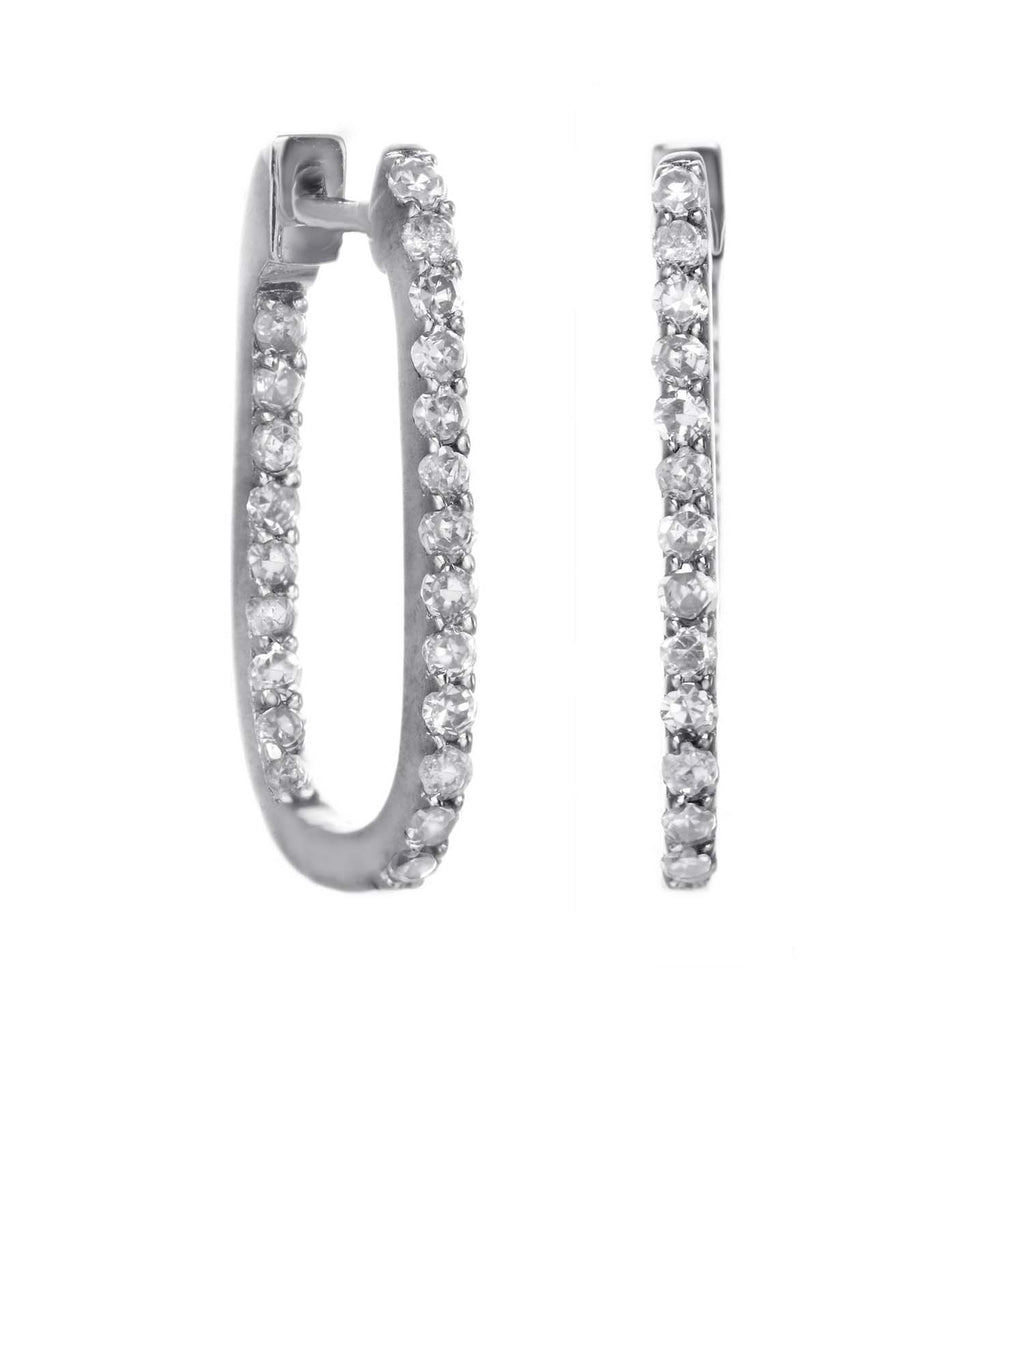 Margo Morrison Oval Hoop Diamond Earrings - Sterling Silver